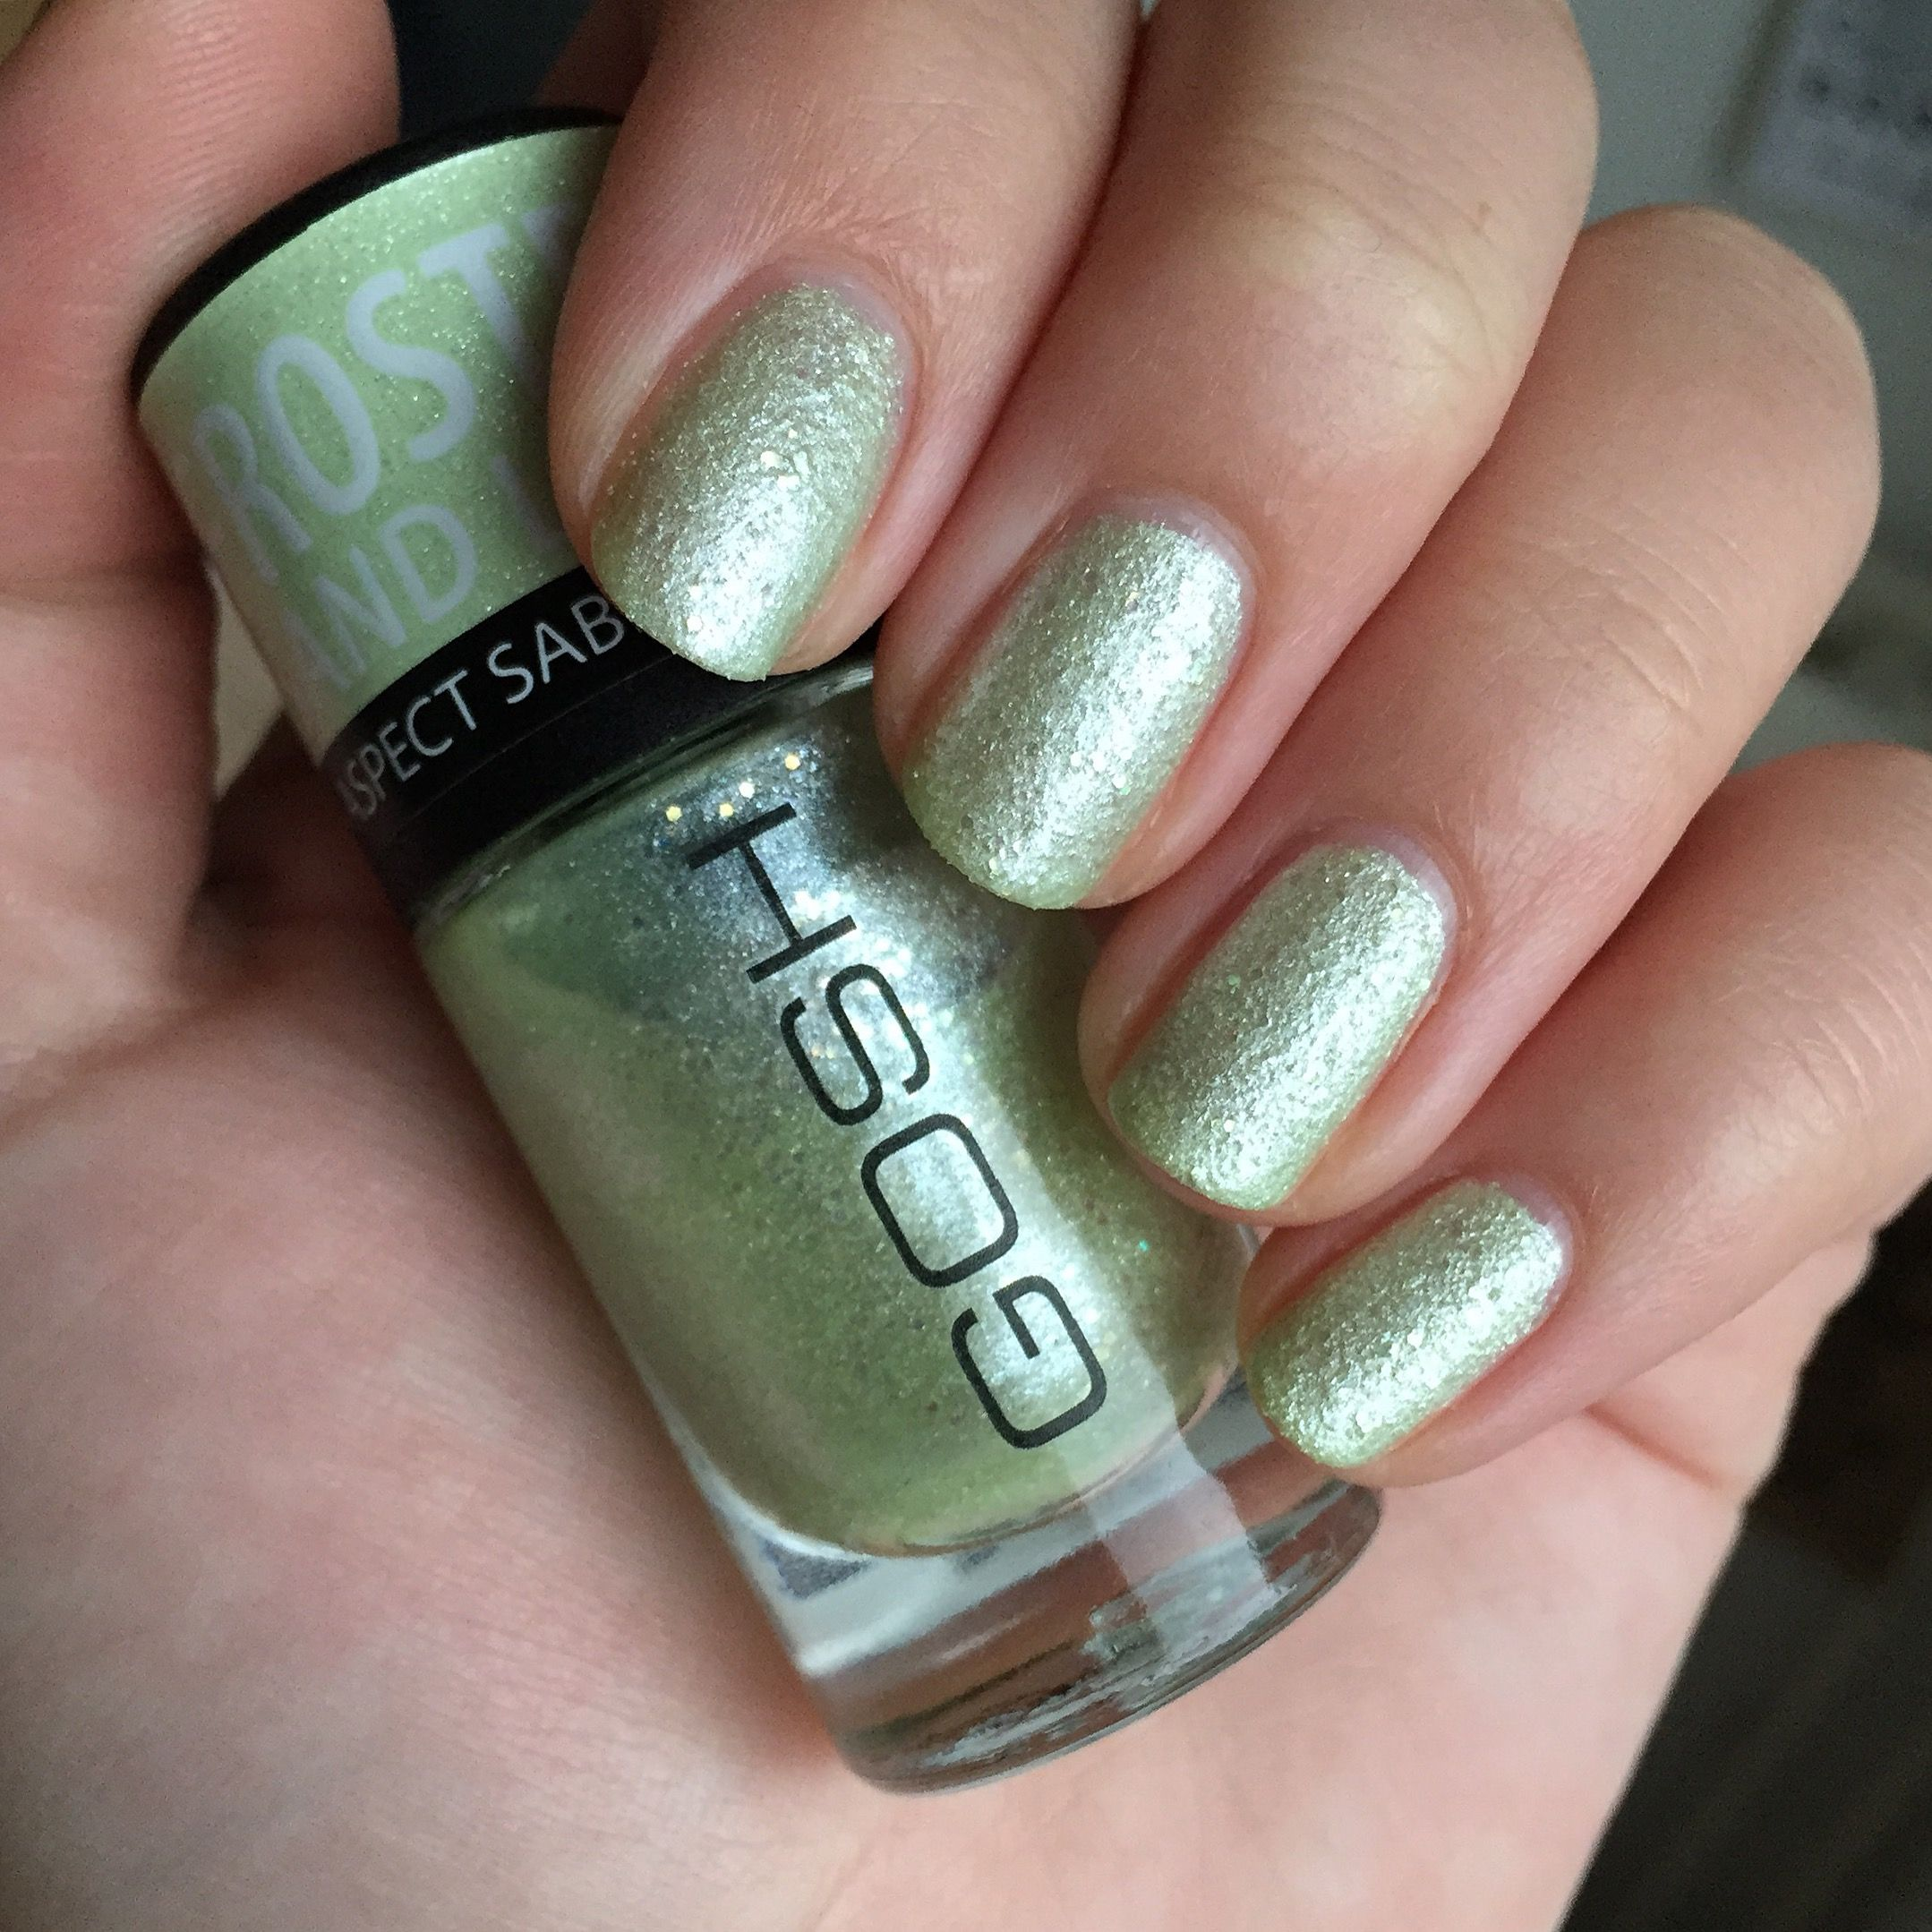 Gosh Frosted Nail Lacquer - Frosted Soft Green (09) | Swatches ...